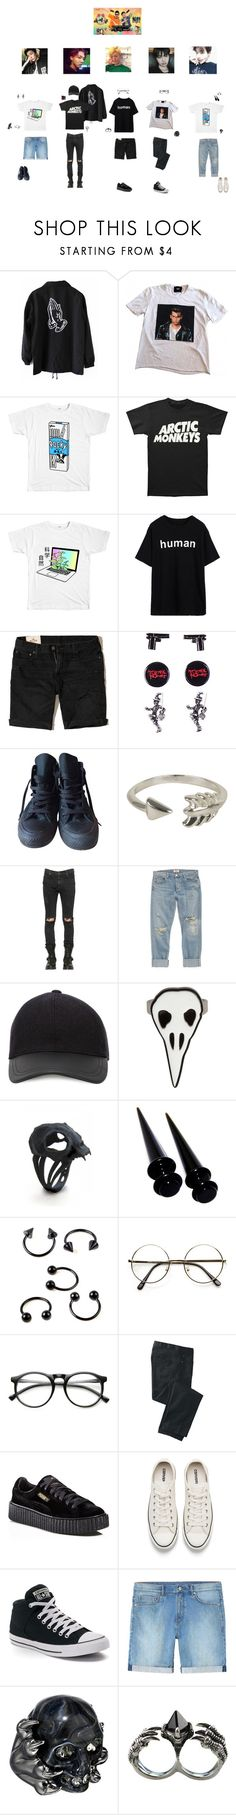 """""""The boy's on Weekly idol"""" by flow-mosterz ❤ liked on Polyvore featuring D&G, Hollister Co., Hot Topic, Converse, Olia, RtA, AGOLDE, Canali, ZeroUV and INDIE HAIR"""